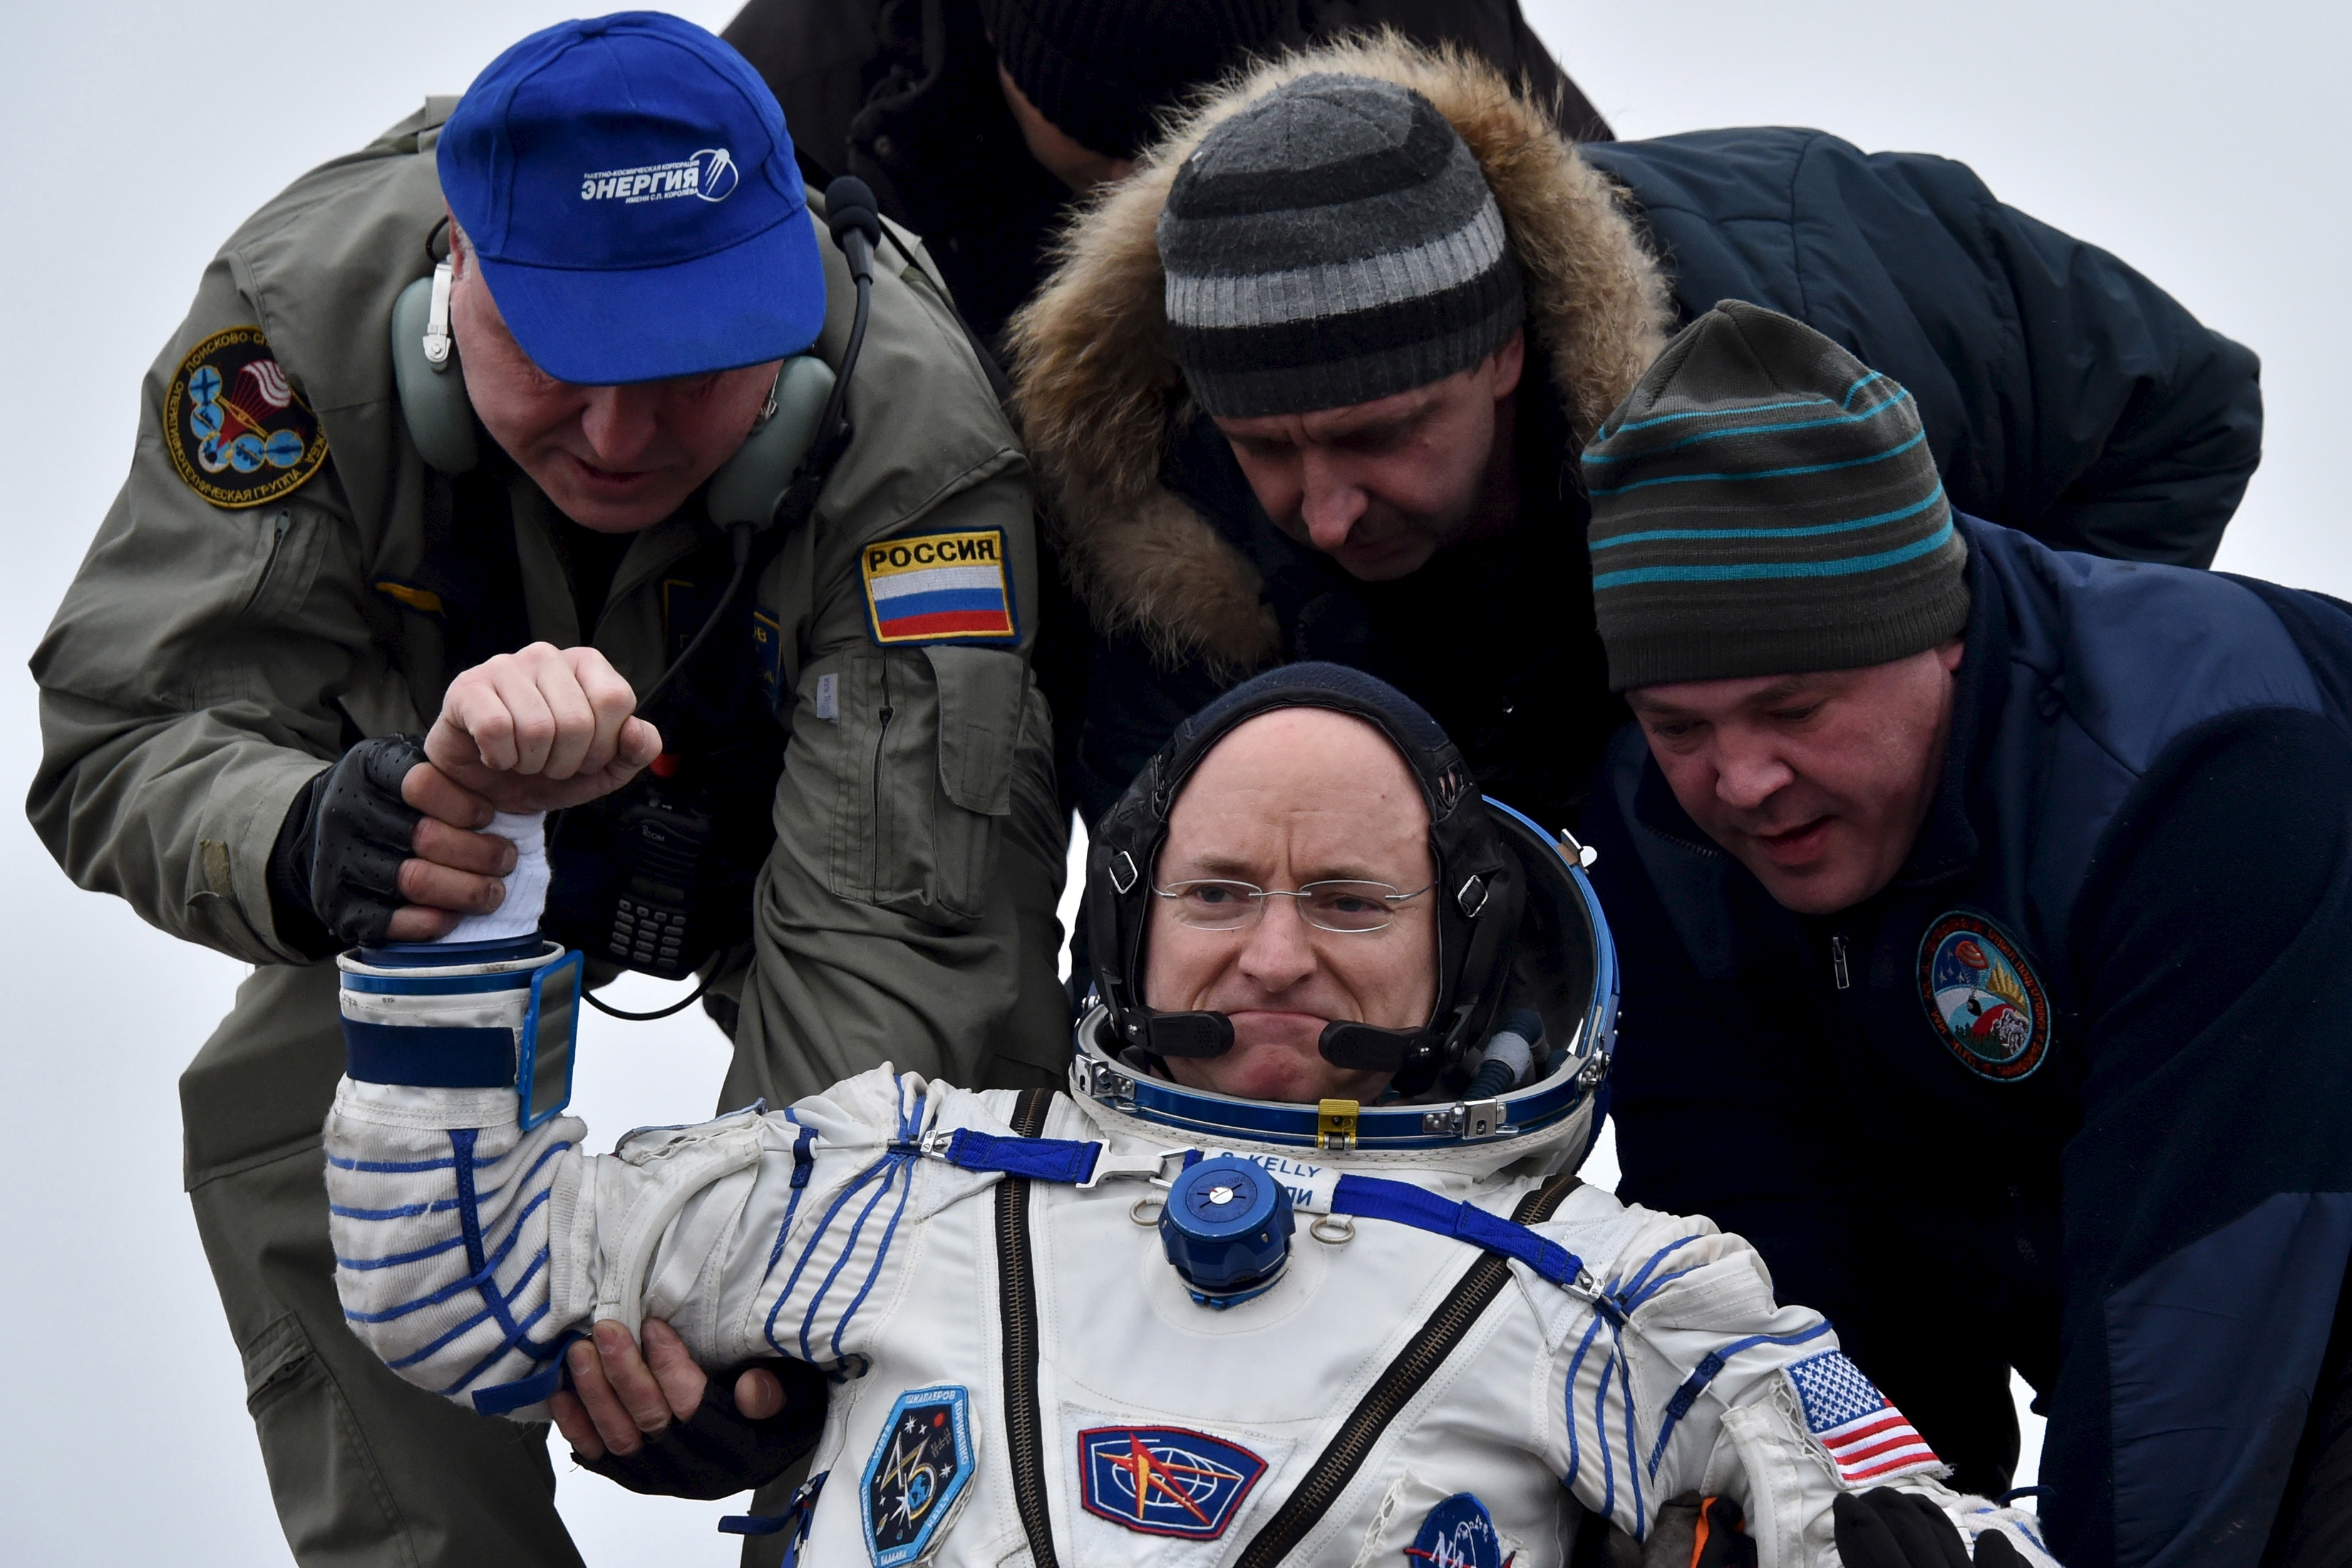 Ground personnel help U.S. astronaut Scott Kelly to get out of a Soyuz capsule shortly after landing near the town of Dzhezkazgan